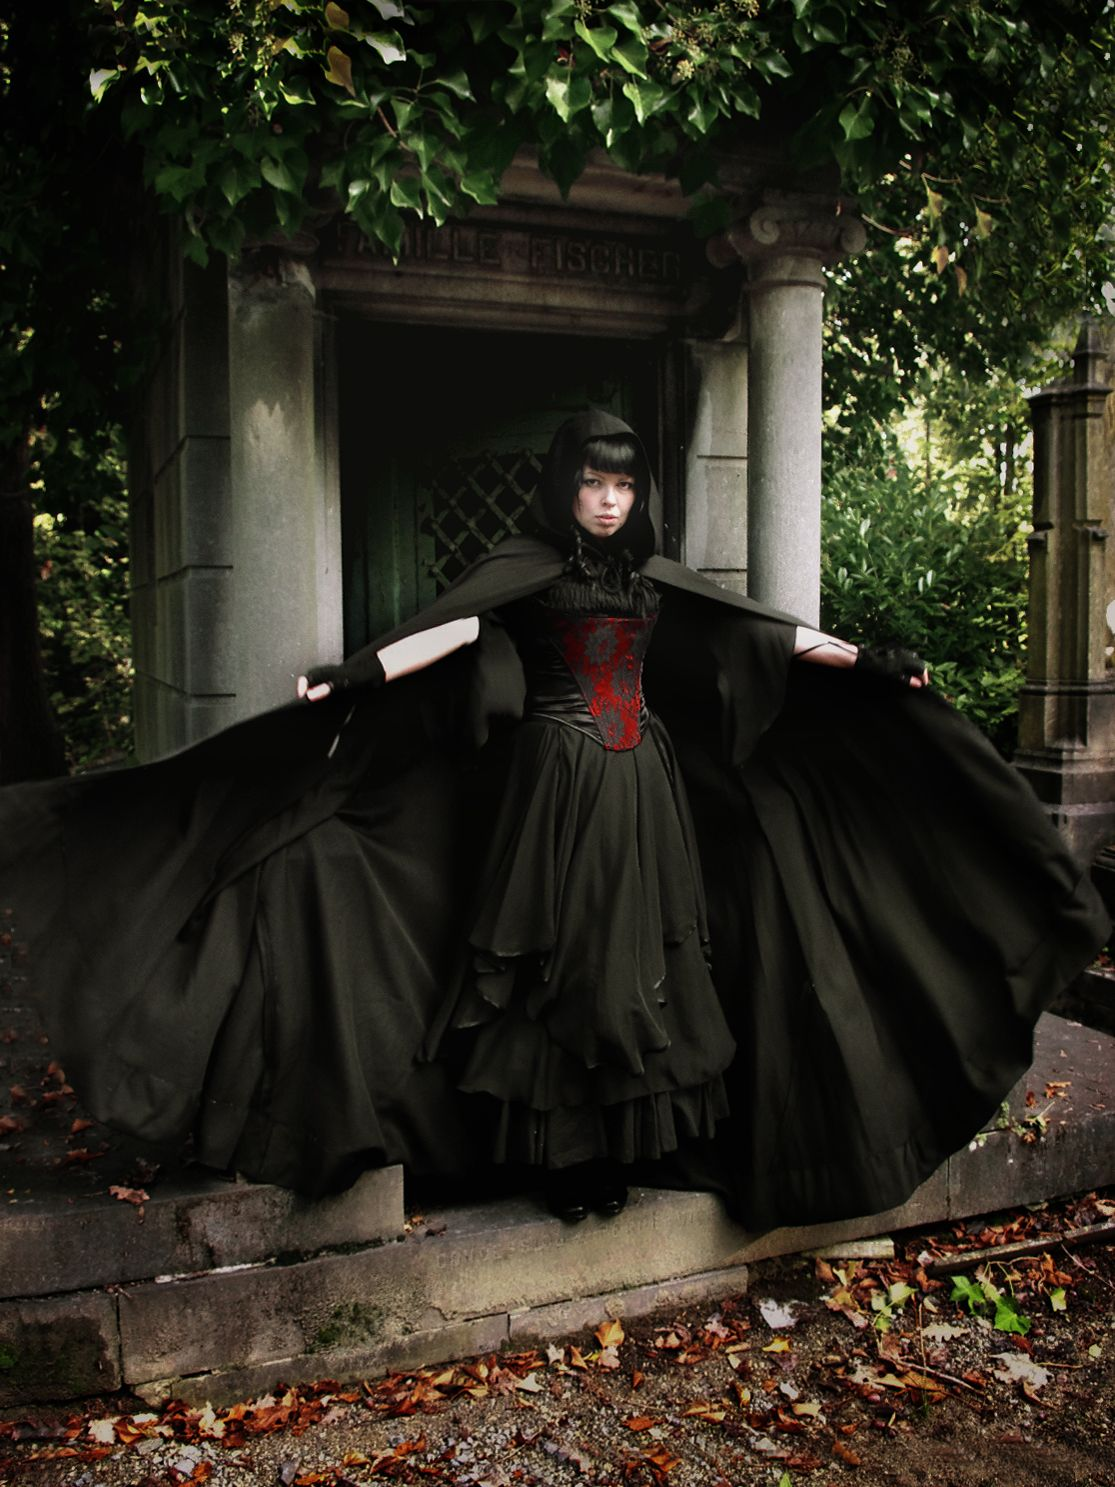 Gothic Neo Victorian Dress And Cape On This Goth Girl